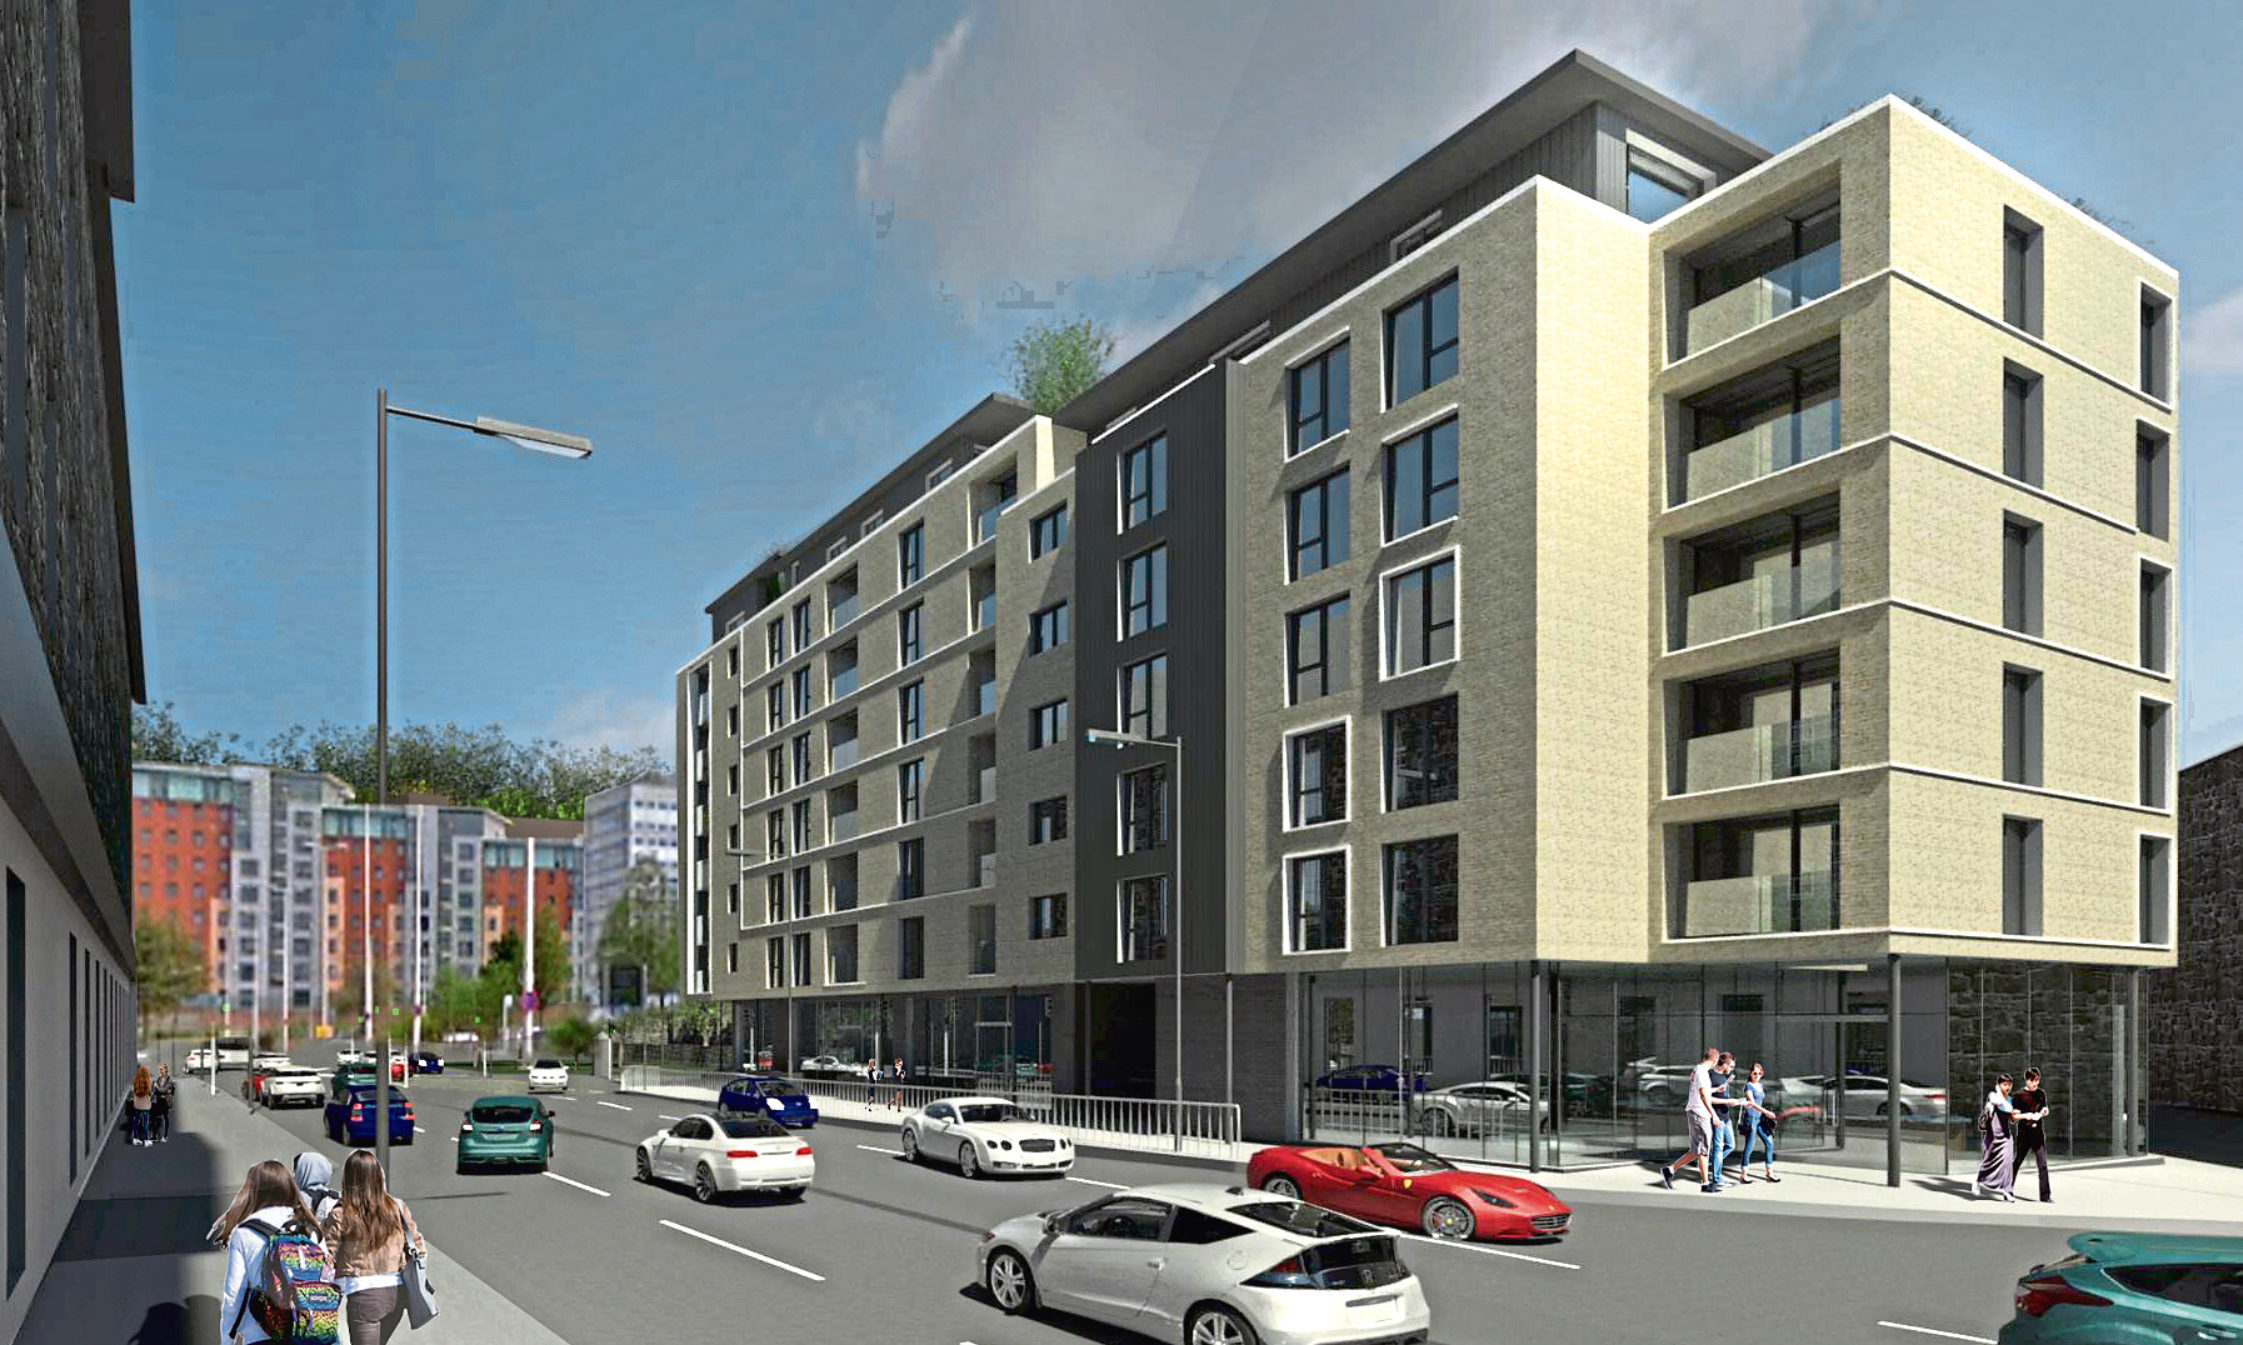 An artist's impression of the original housing and retail development.